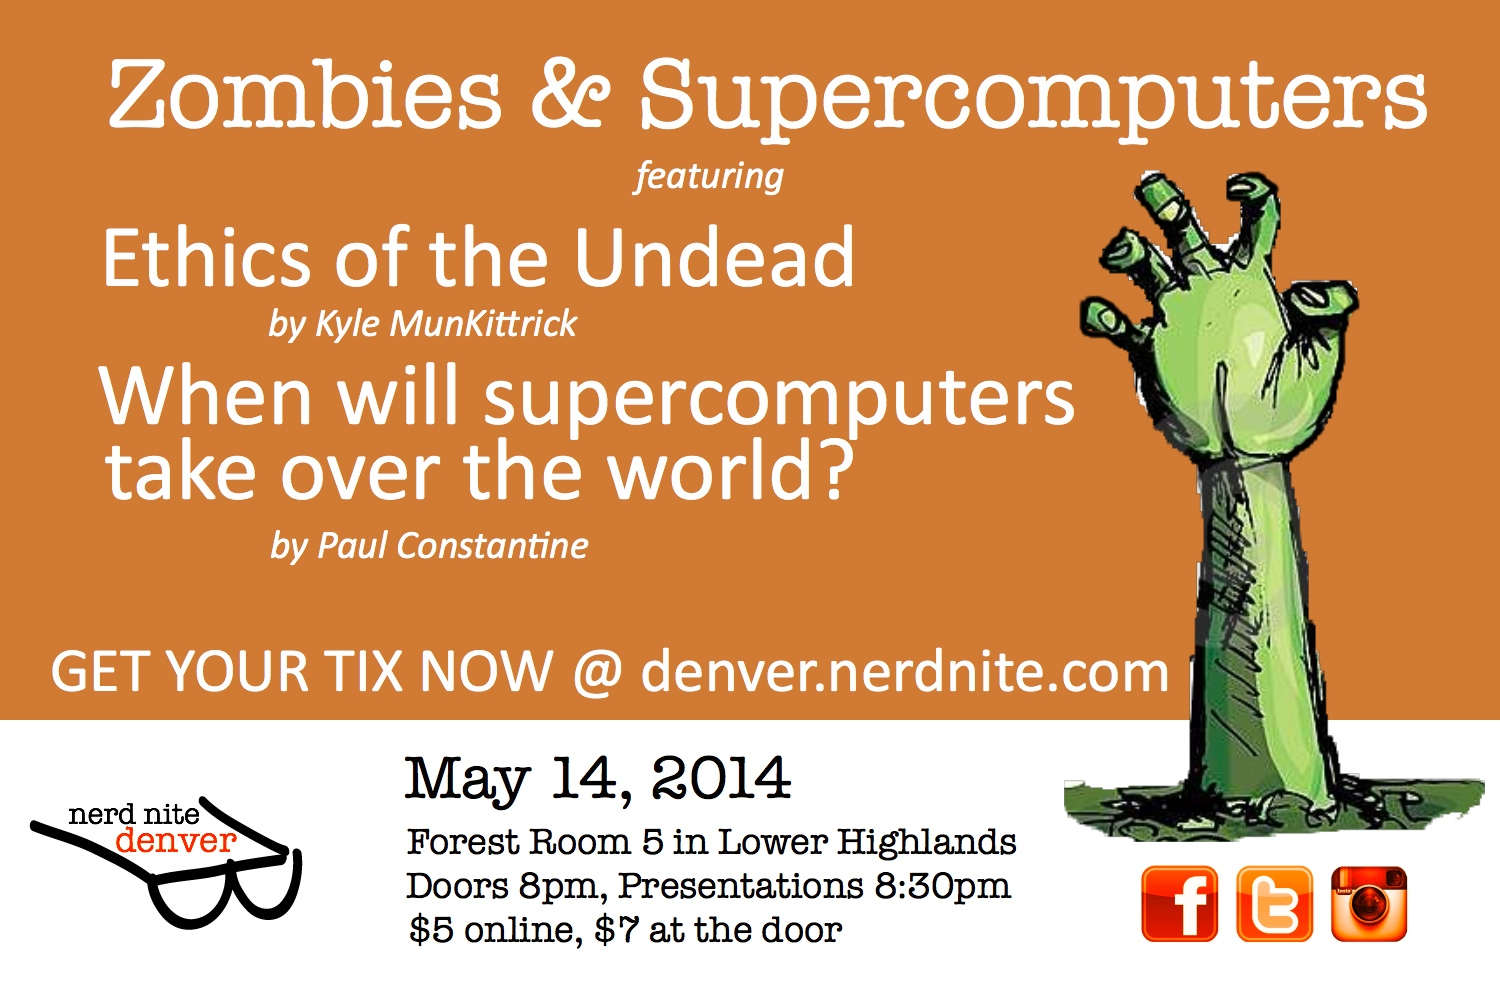 Nerd Nite #1 Poster - Zombies and Supercomputers